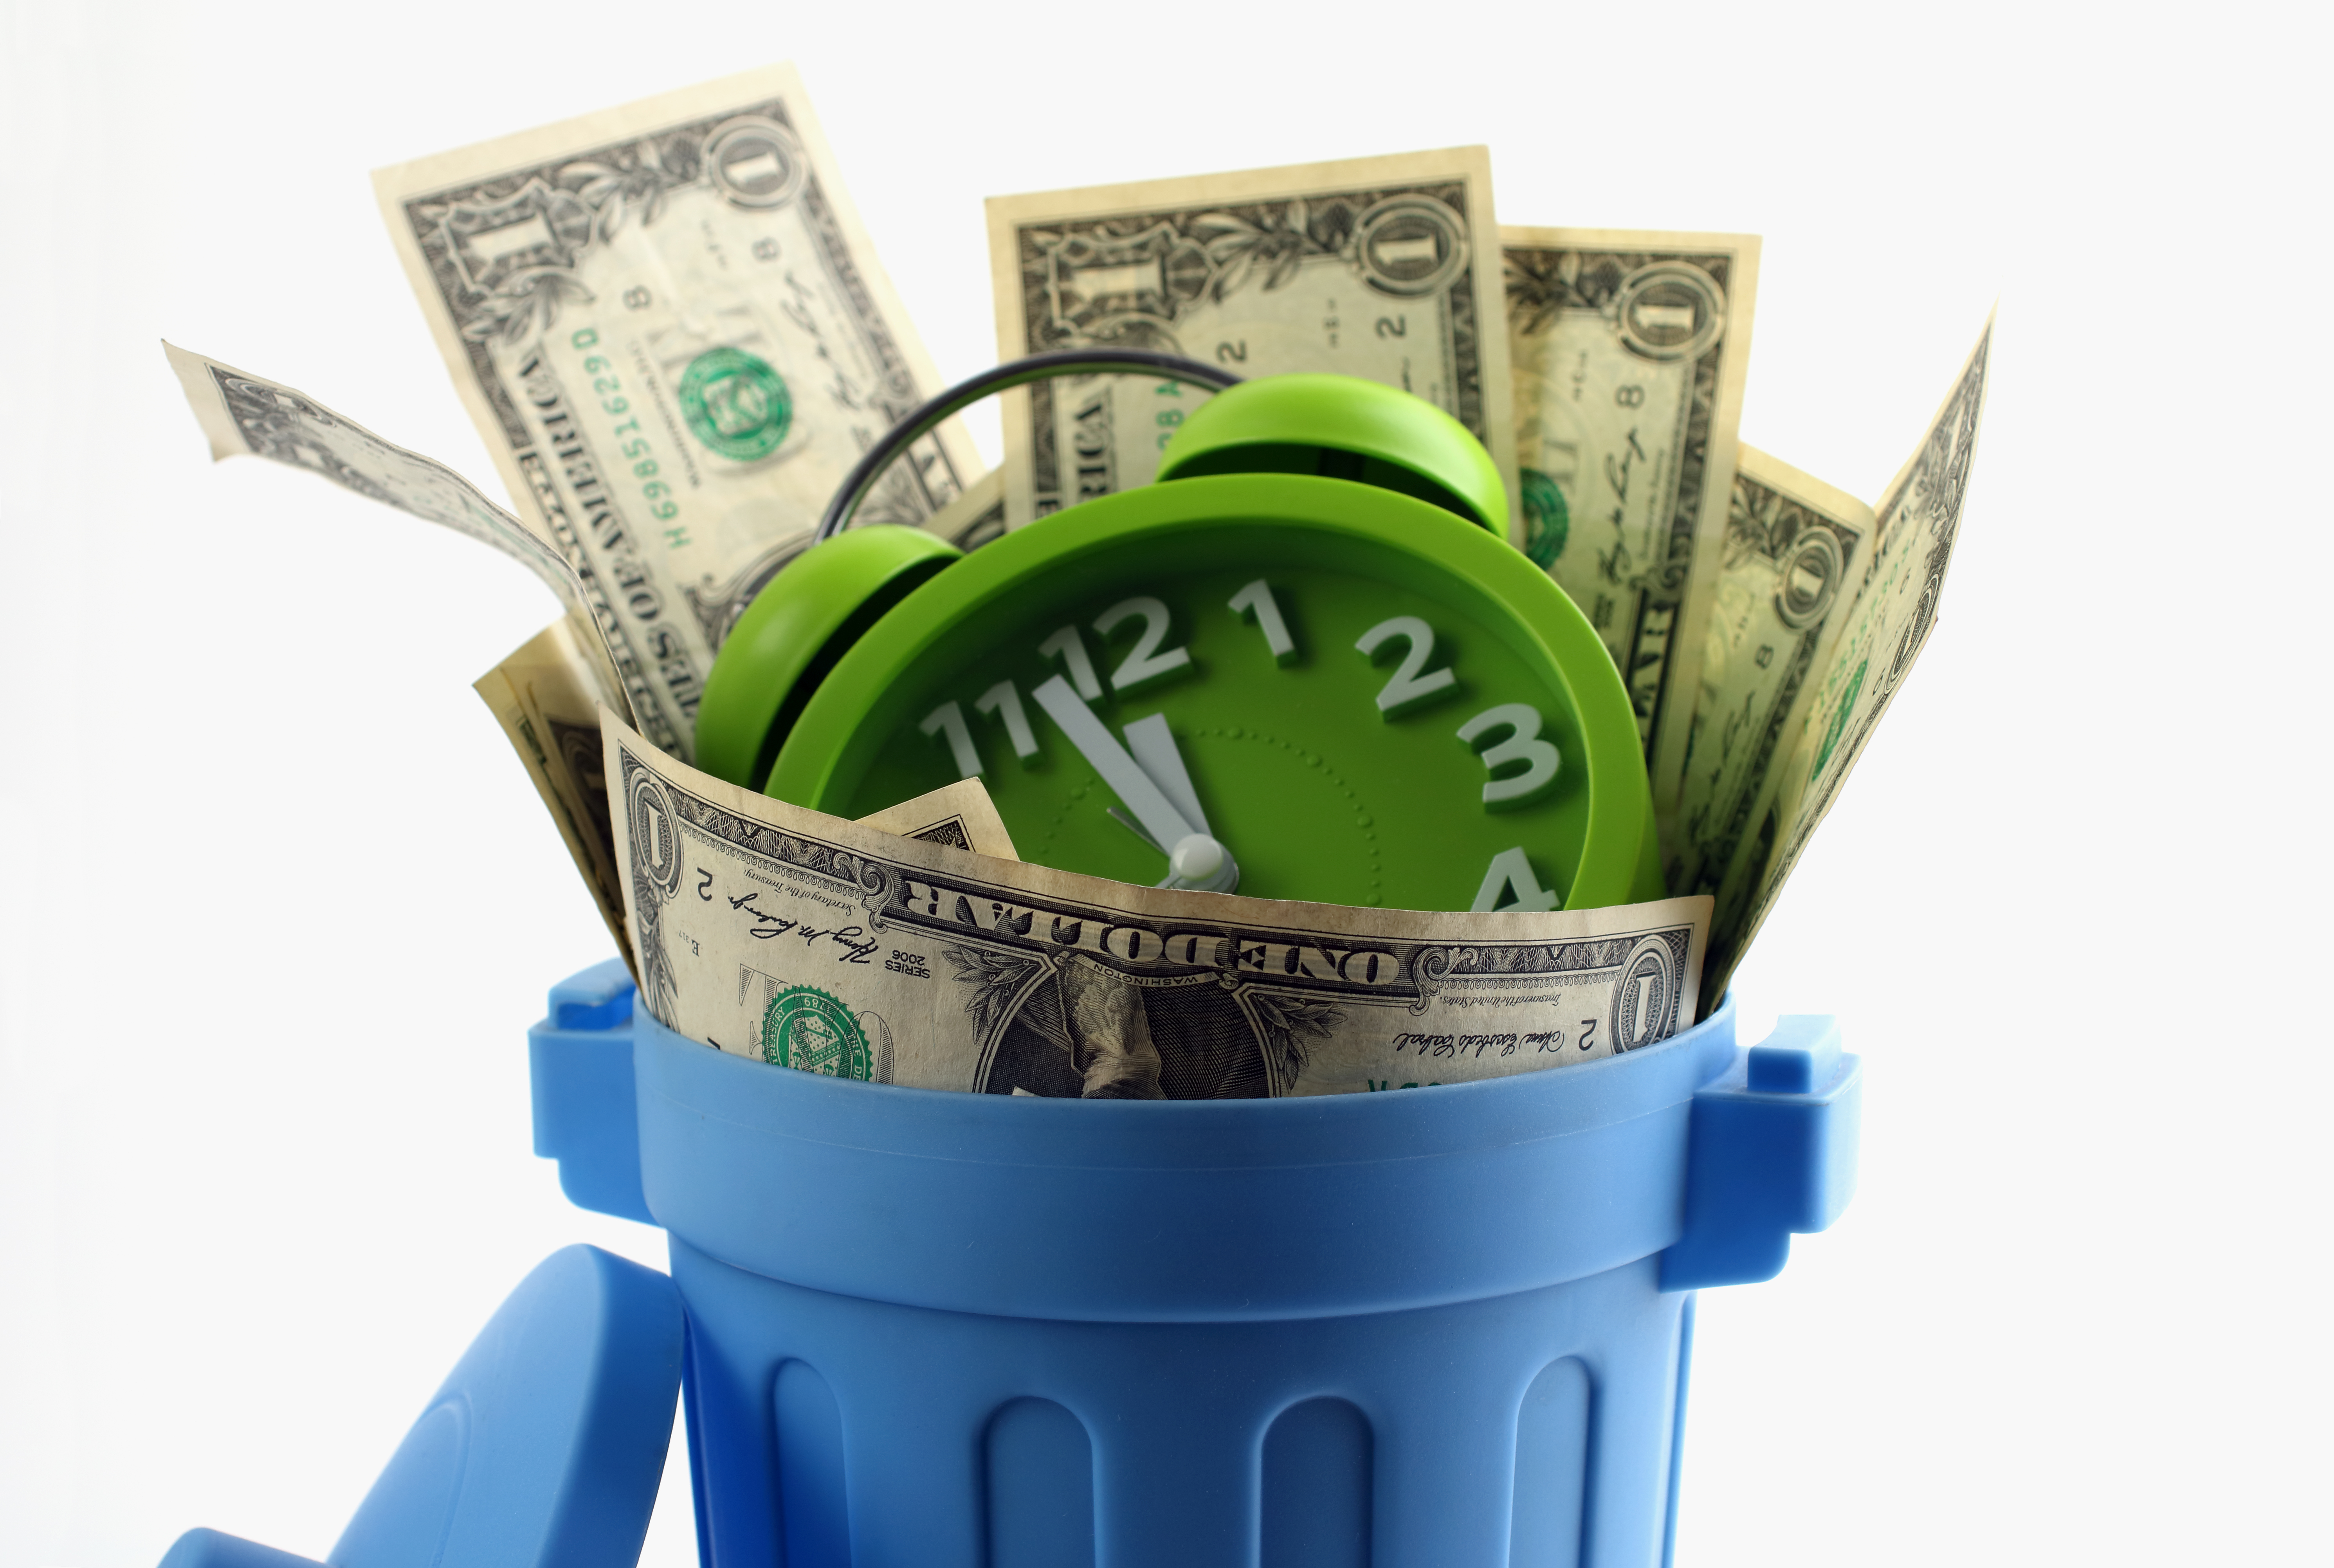 Why You Should NOT Waste Time & Money on Evidence Based Management!